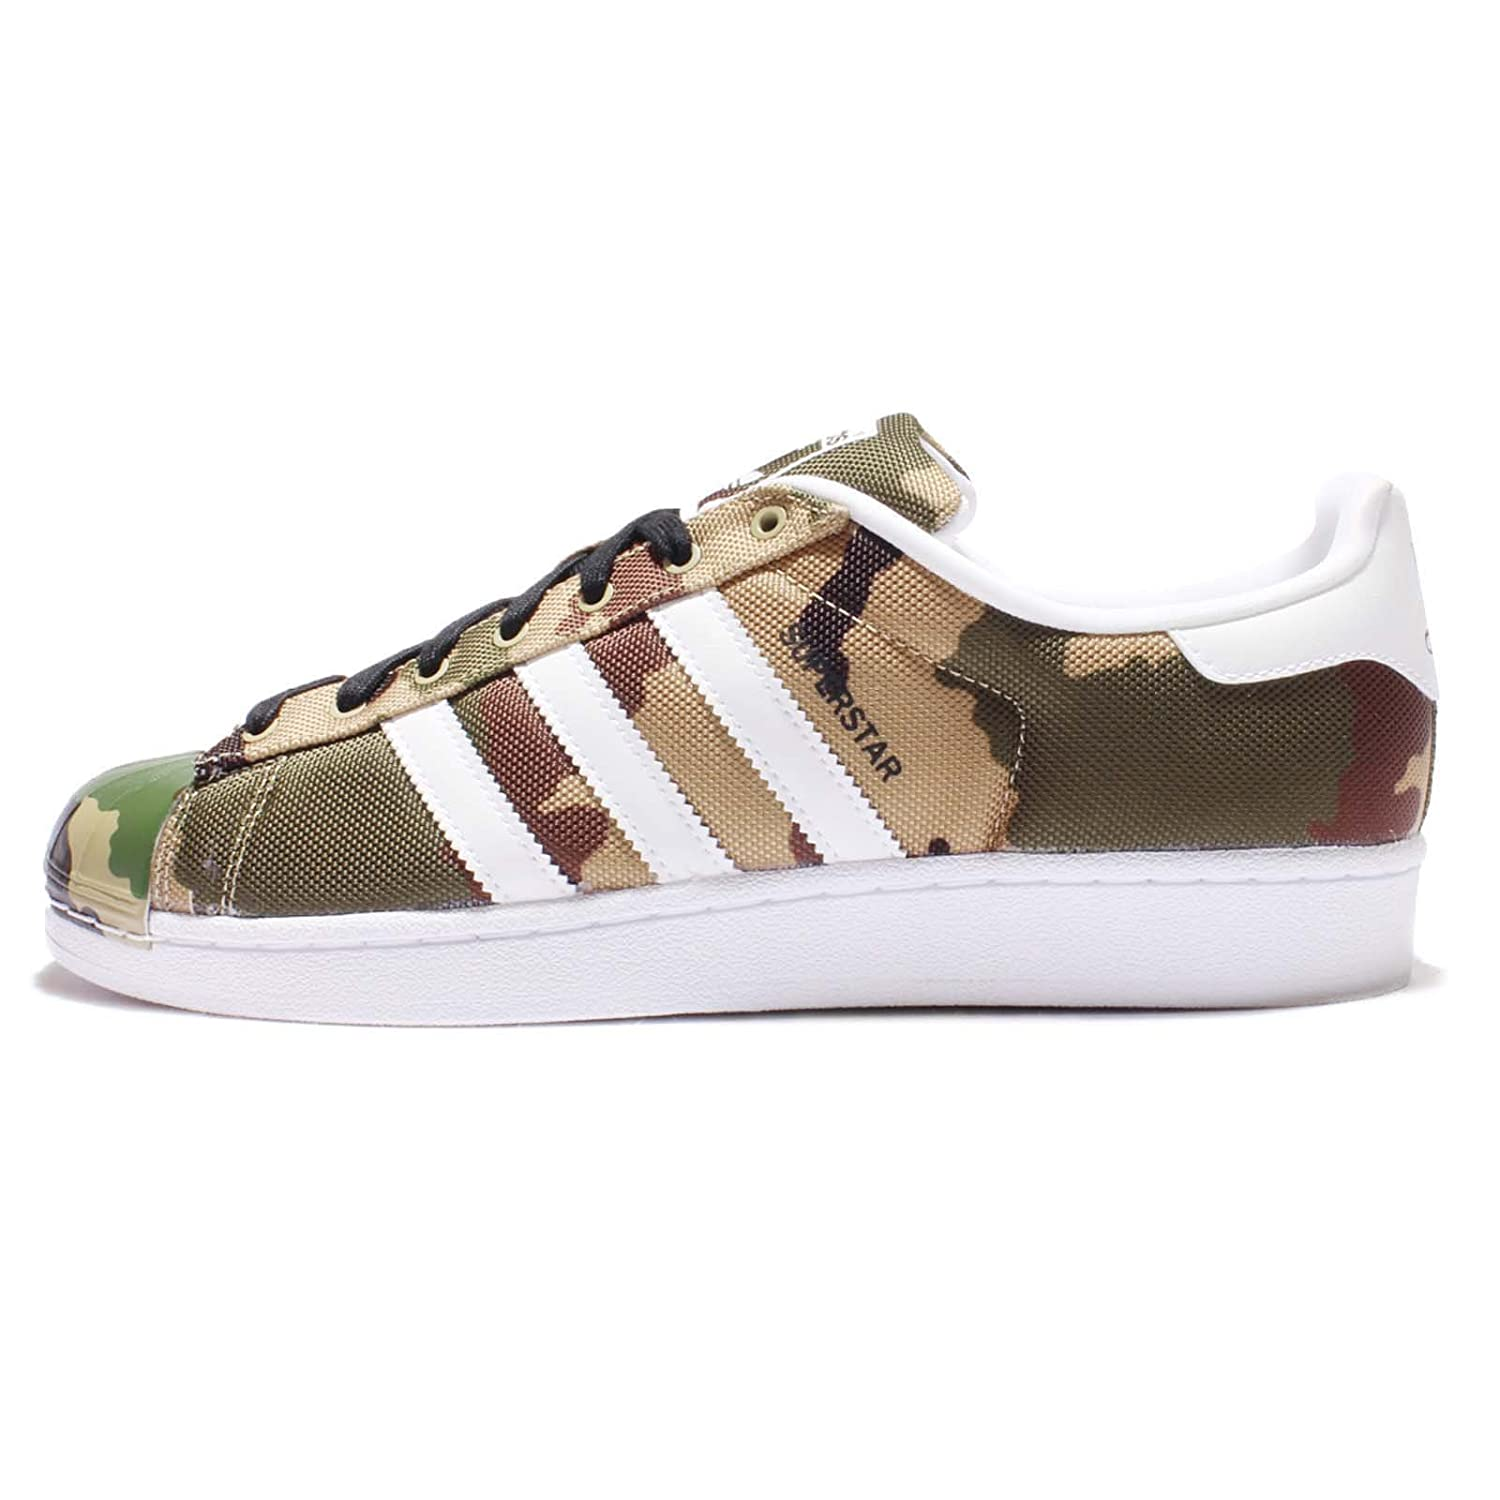 info for 1ad1a f0eea adidas Originals Superstar Shell Toe Pack Camo Trainers Mens